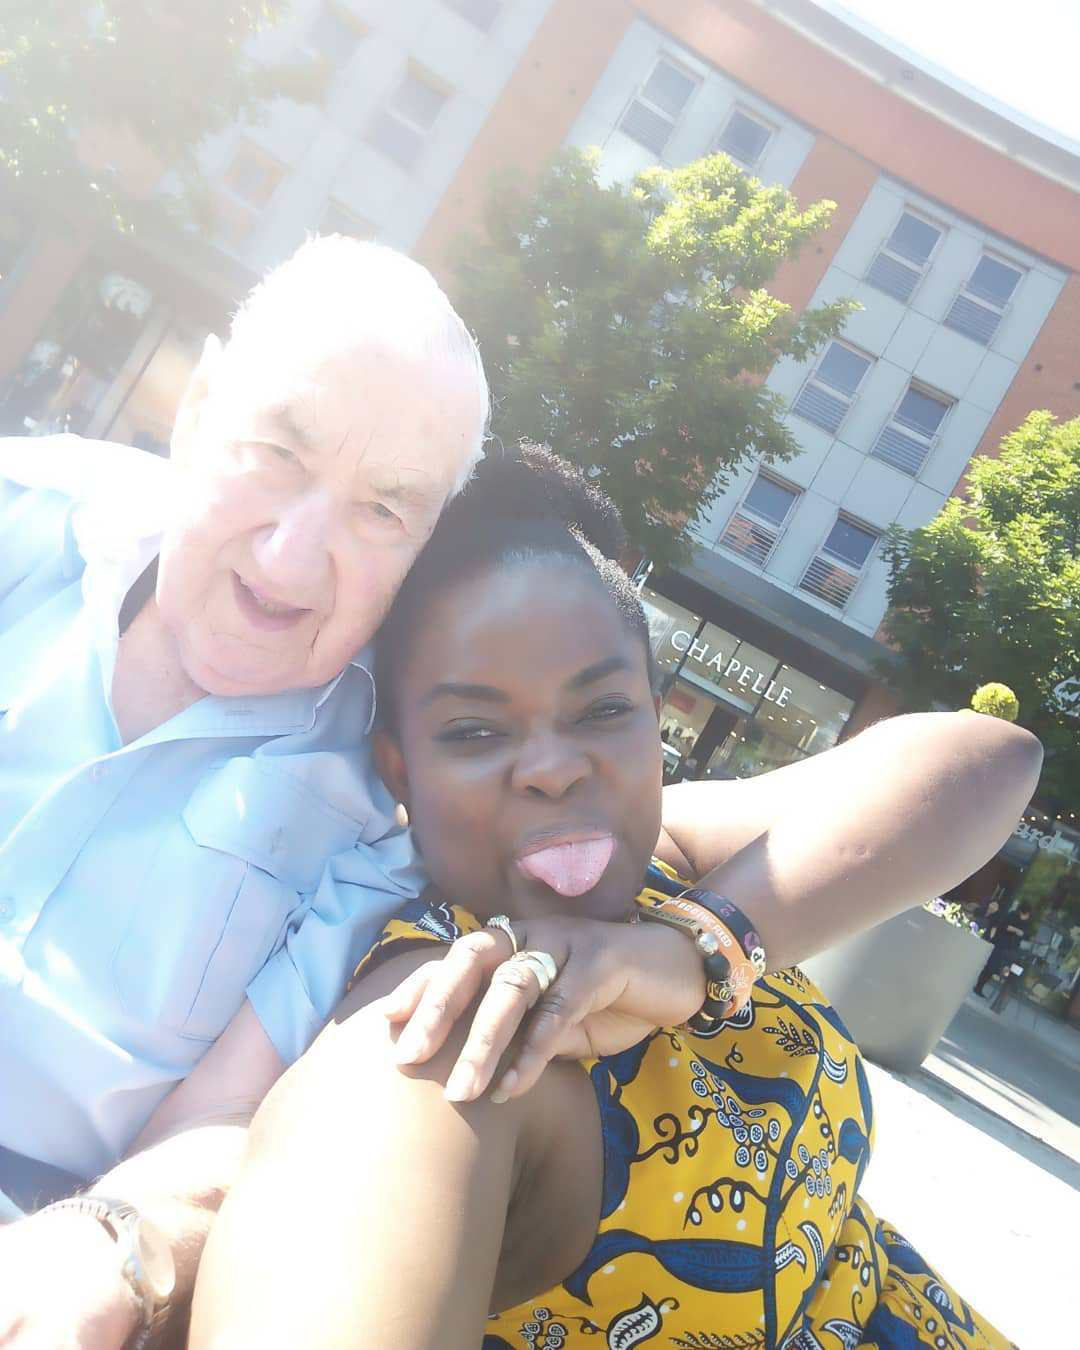 Ghanaian Lady Married To A 90-Year-Old White Man Discloses How She Met Her Husband (+Video/Photos)